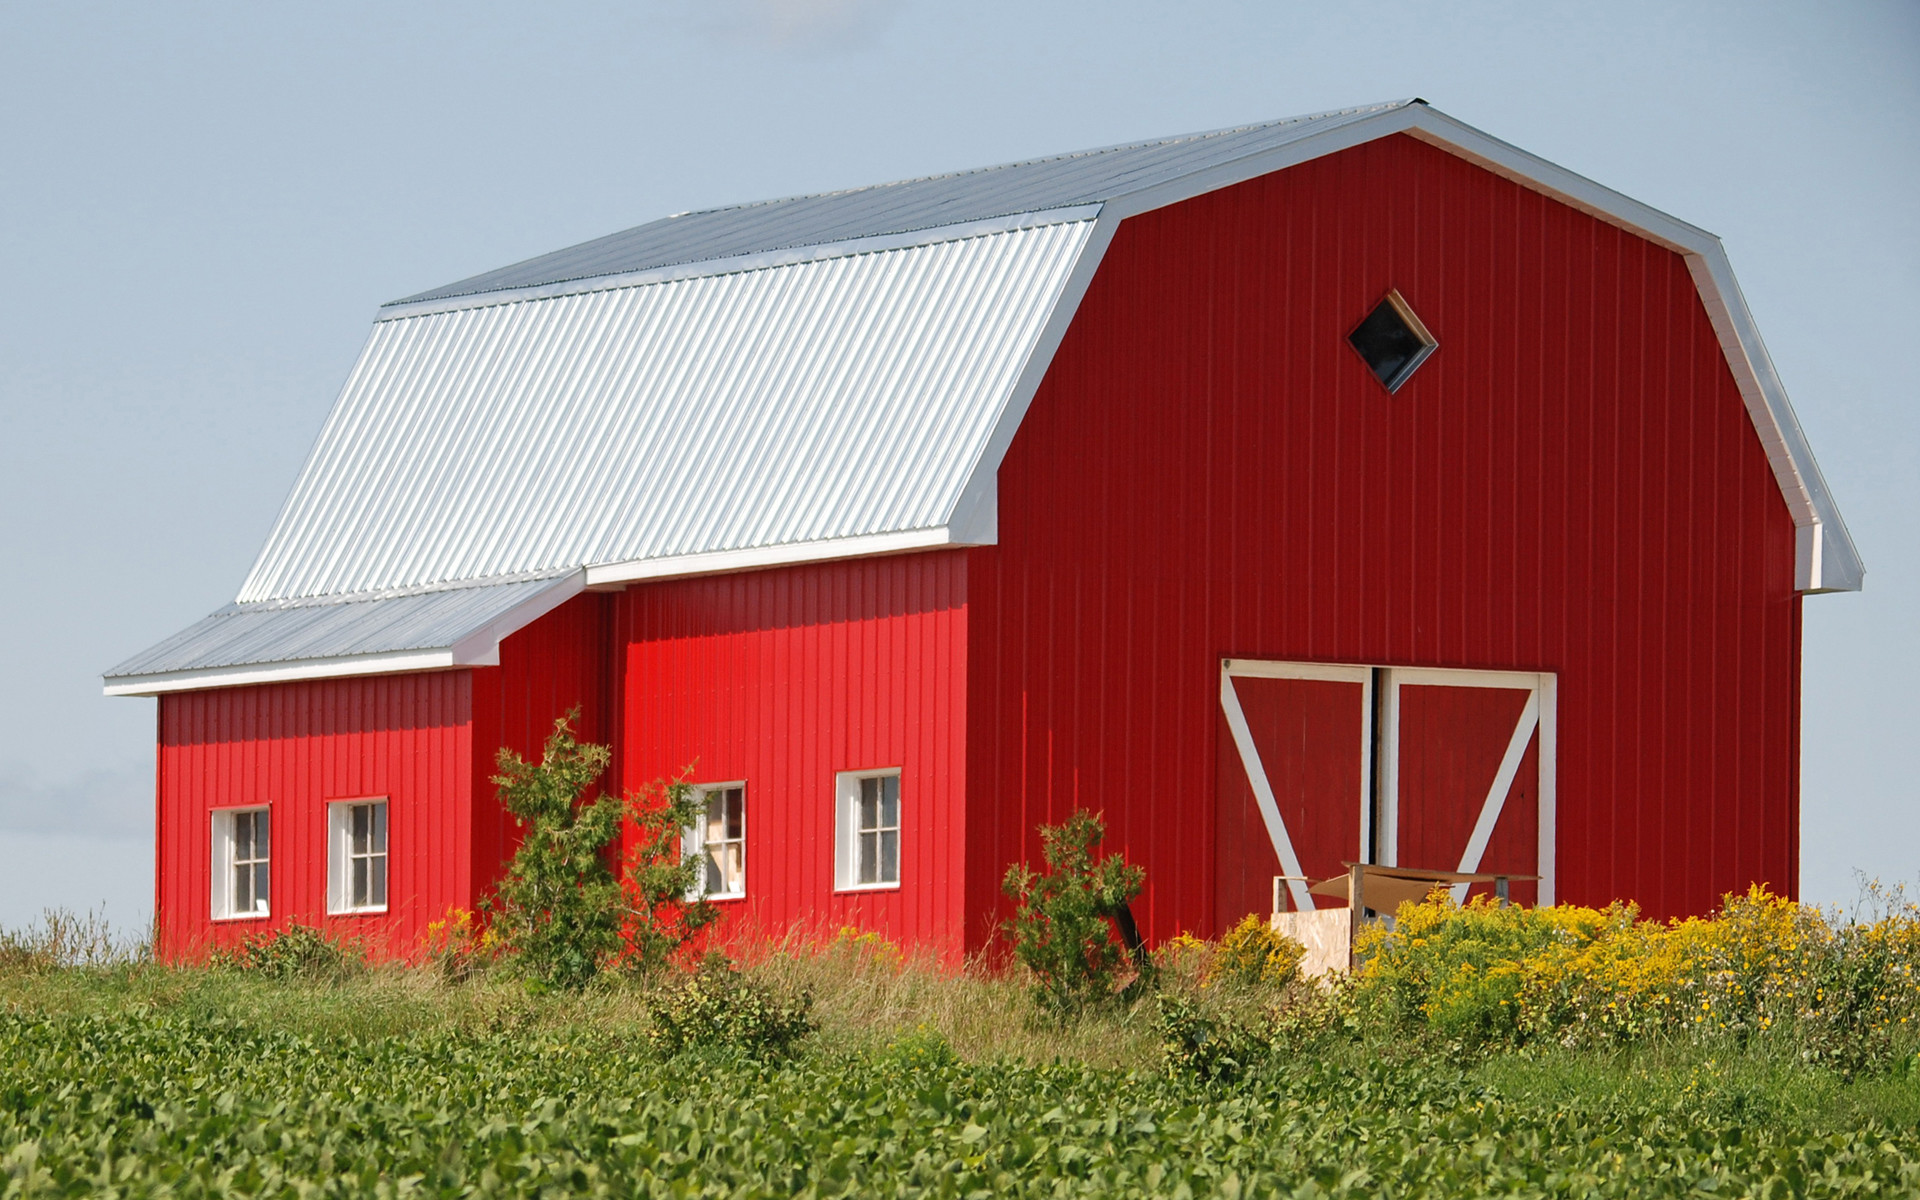 1920x1200 Moril-the red barn